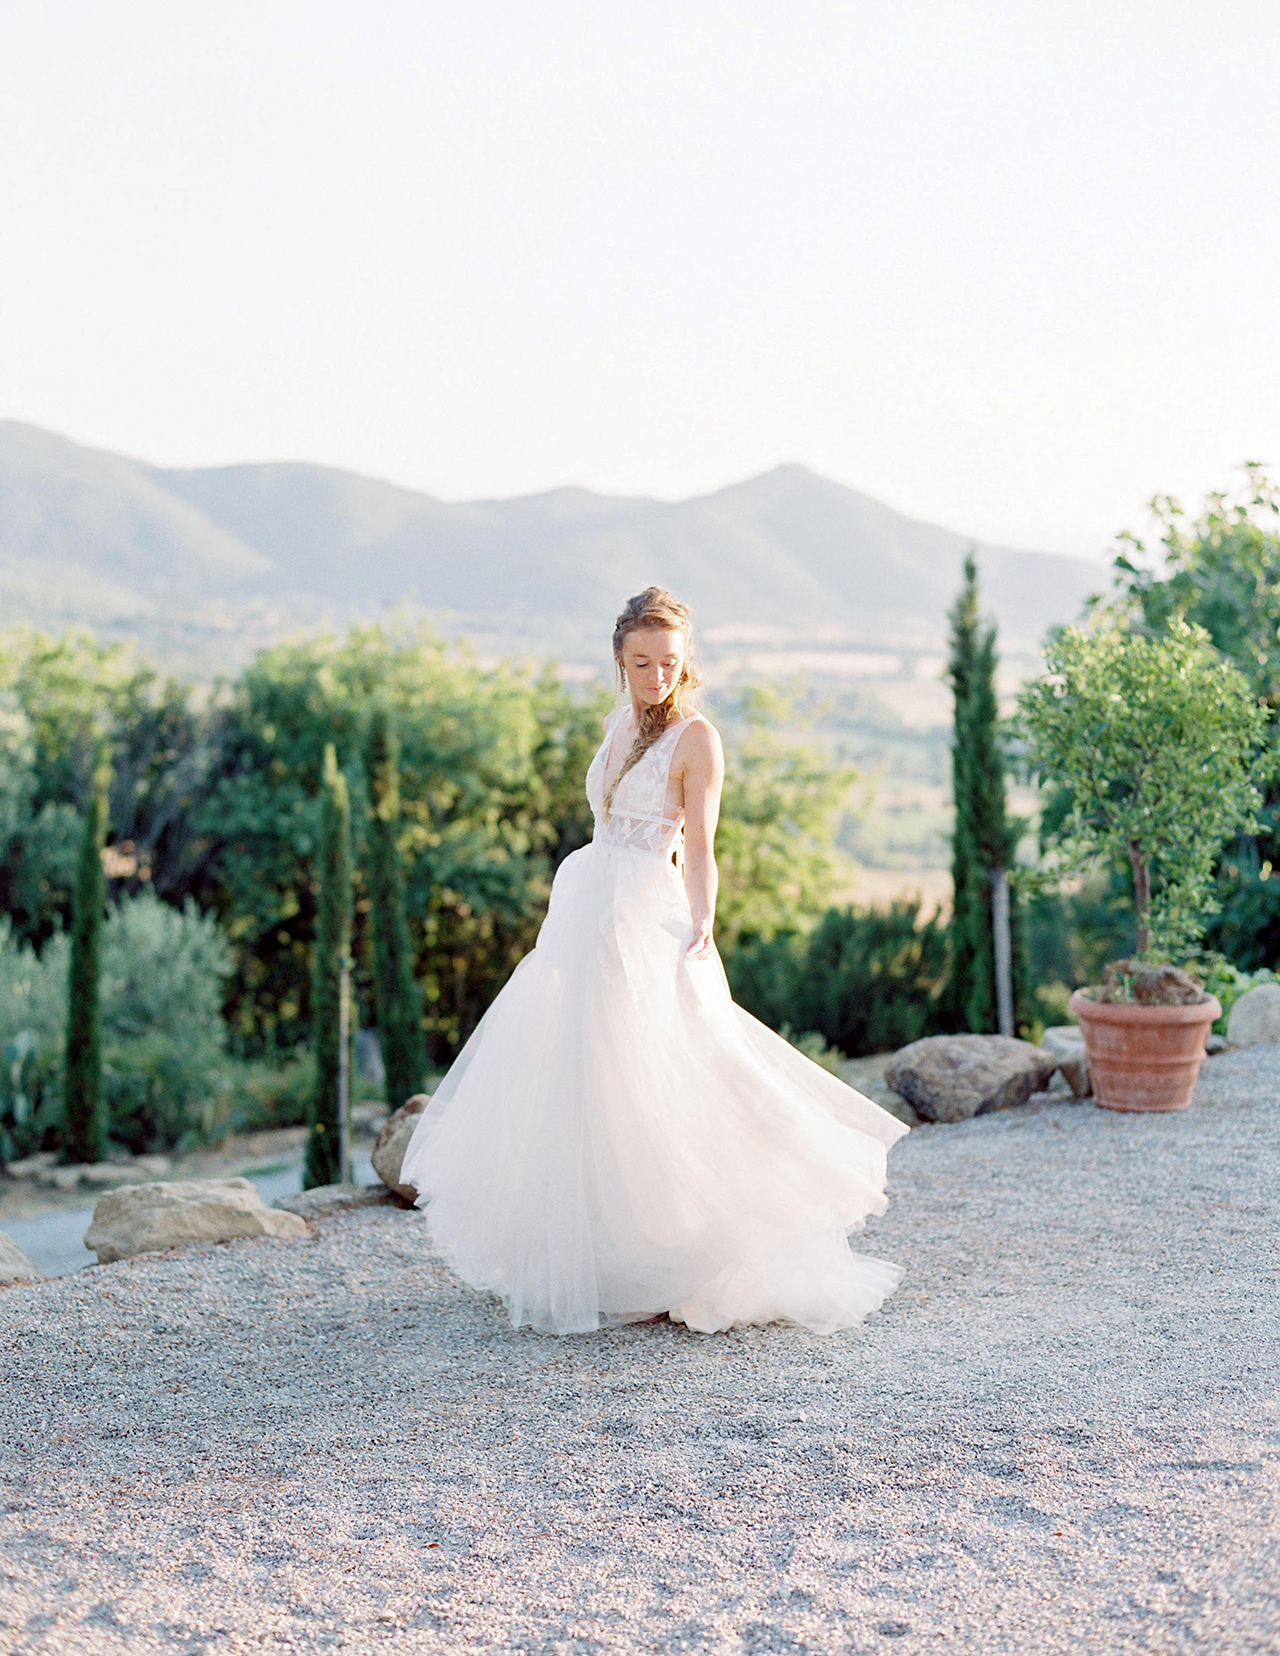 bride poses in wedding dress outdoor mountain view